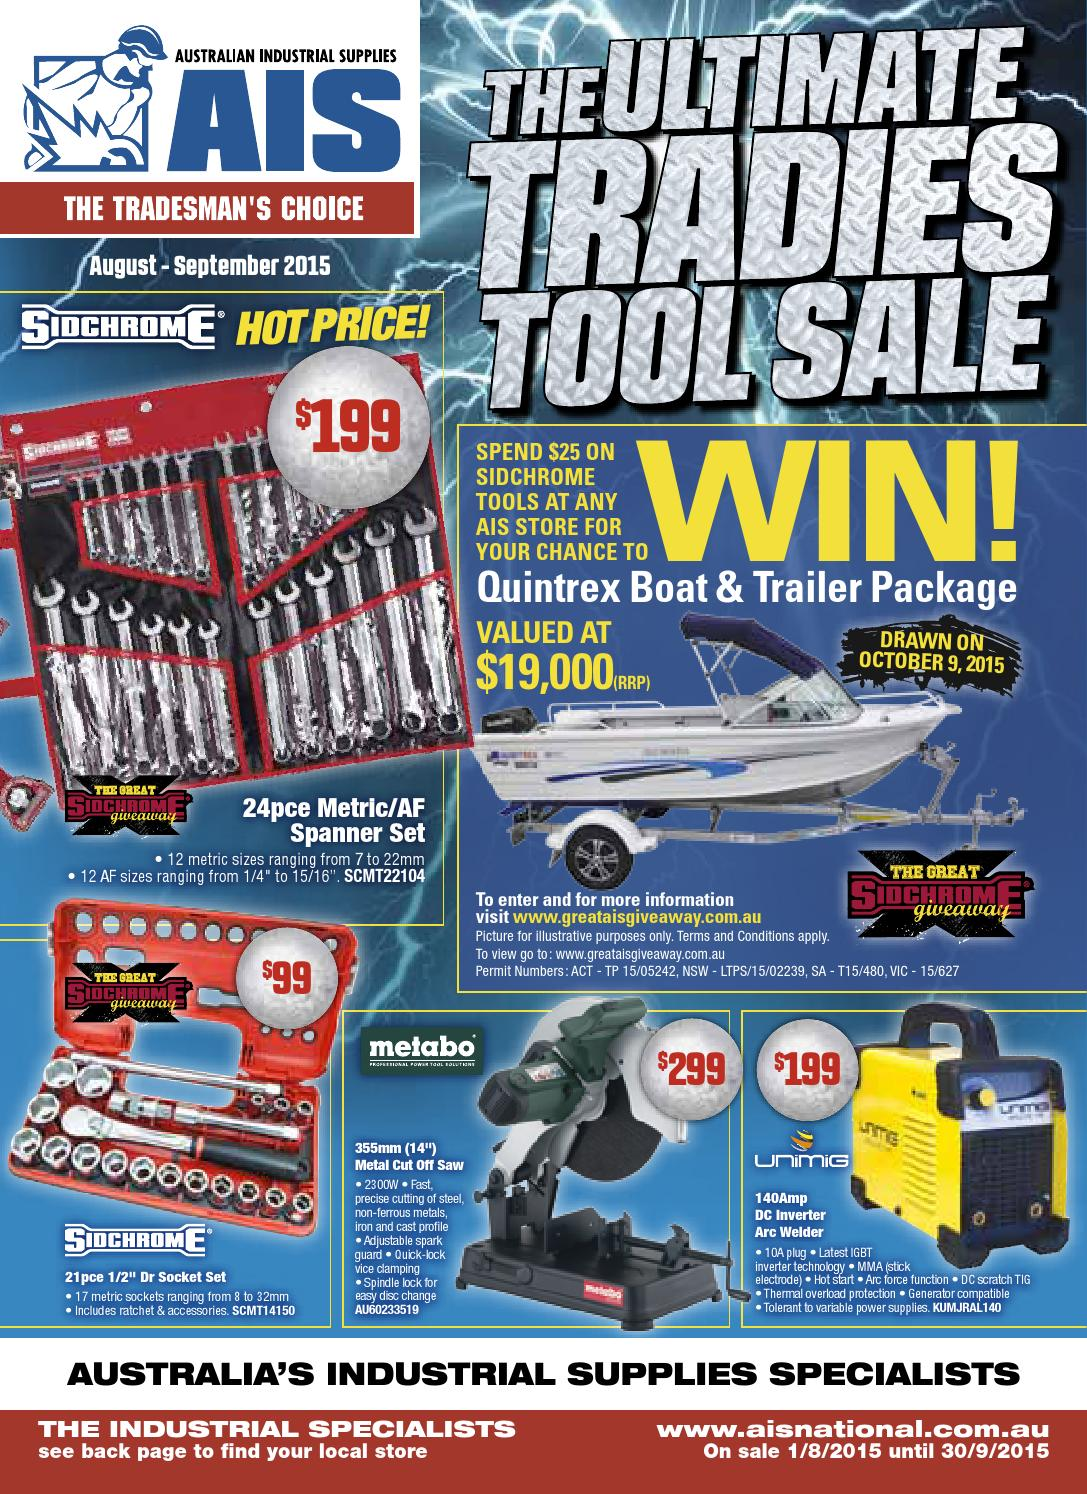 Ais Ultimate Tradies Tool Sale Aug Sep 2015 Catalogue Country Suoer 2 In 1 Inverter Charger 500 Watt Typer Saa 500w C Version By Australian Industrial Supplies Ltd Issuu